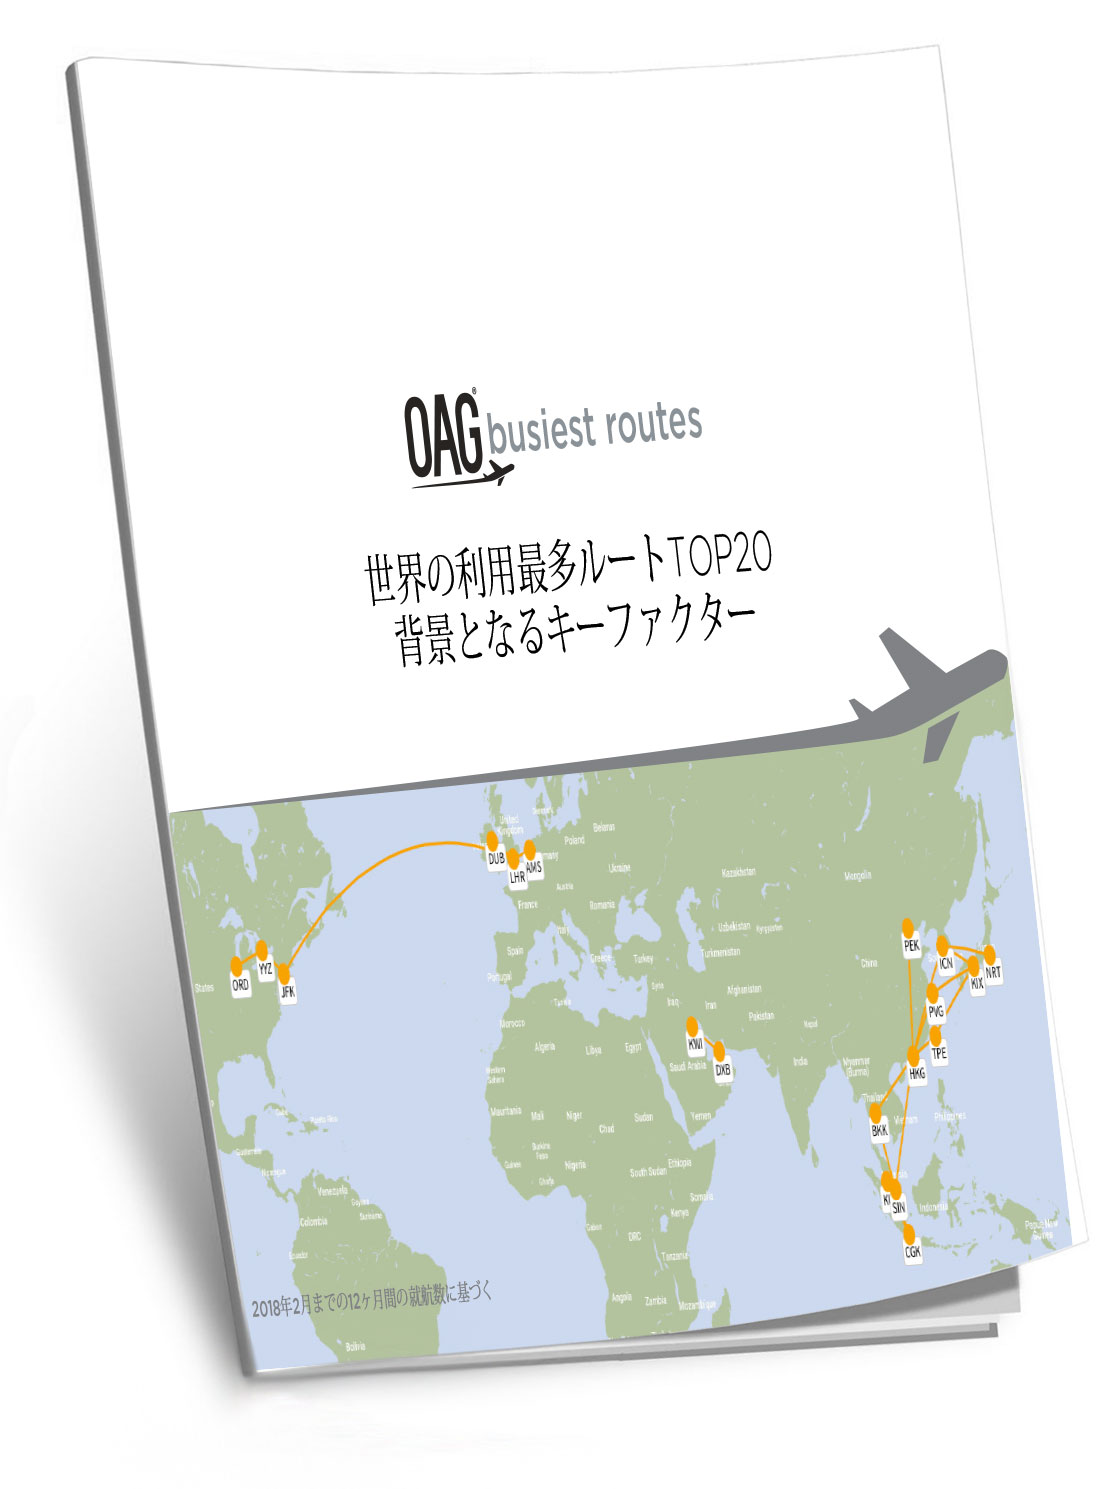 book-thumbnail-jp-busiest-routes.jpg